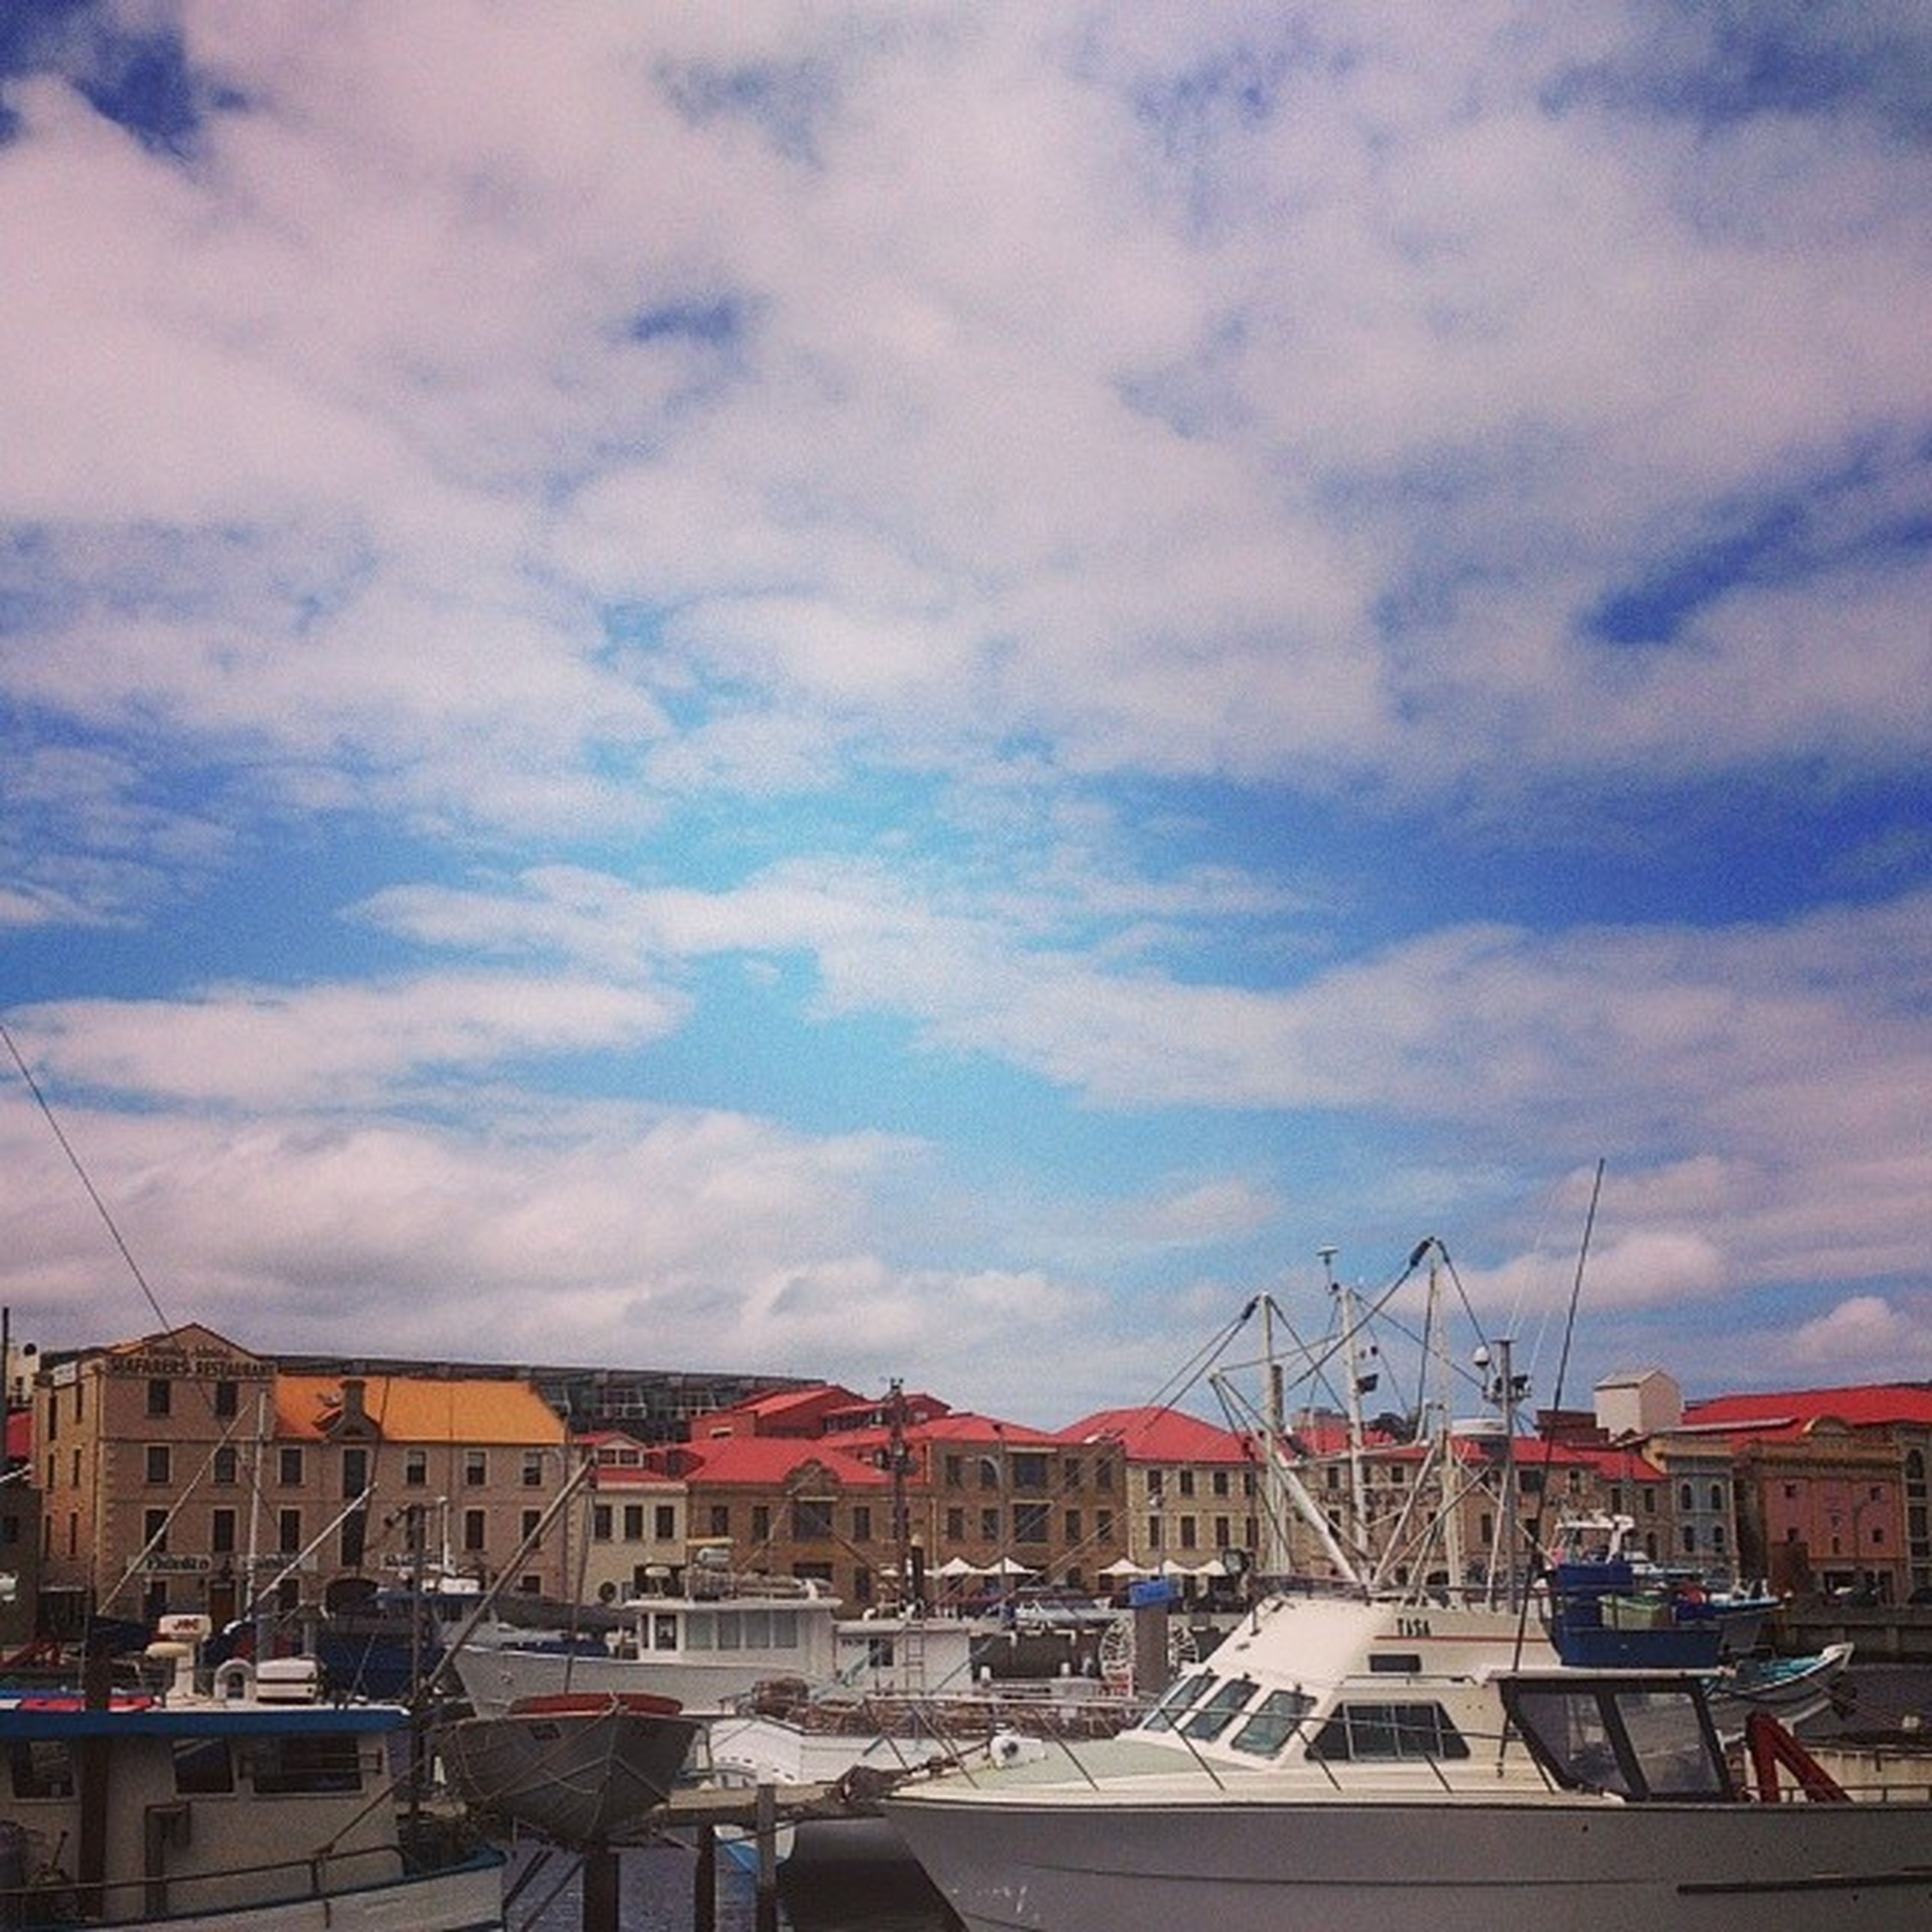 sky, building exterior, built structure, architecture, transportation, cloud - sky, mode of transport, cloudy, nautical vessel, cloud, moored, harbor, car, house, residential structure, residential building, city, land vehicle, outdoors, weather